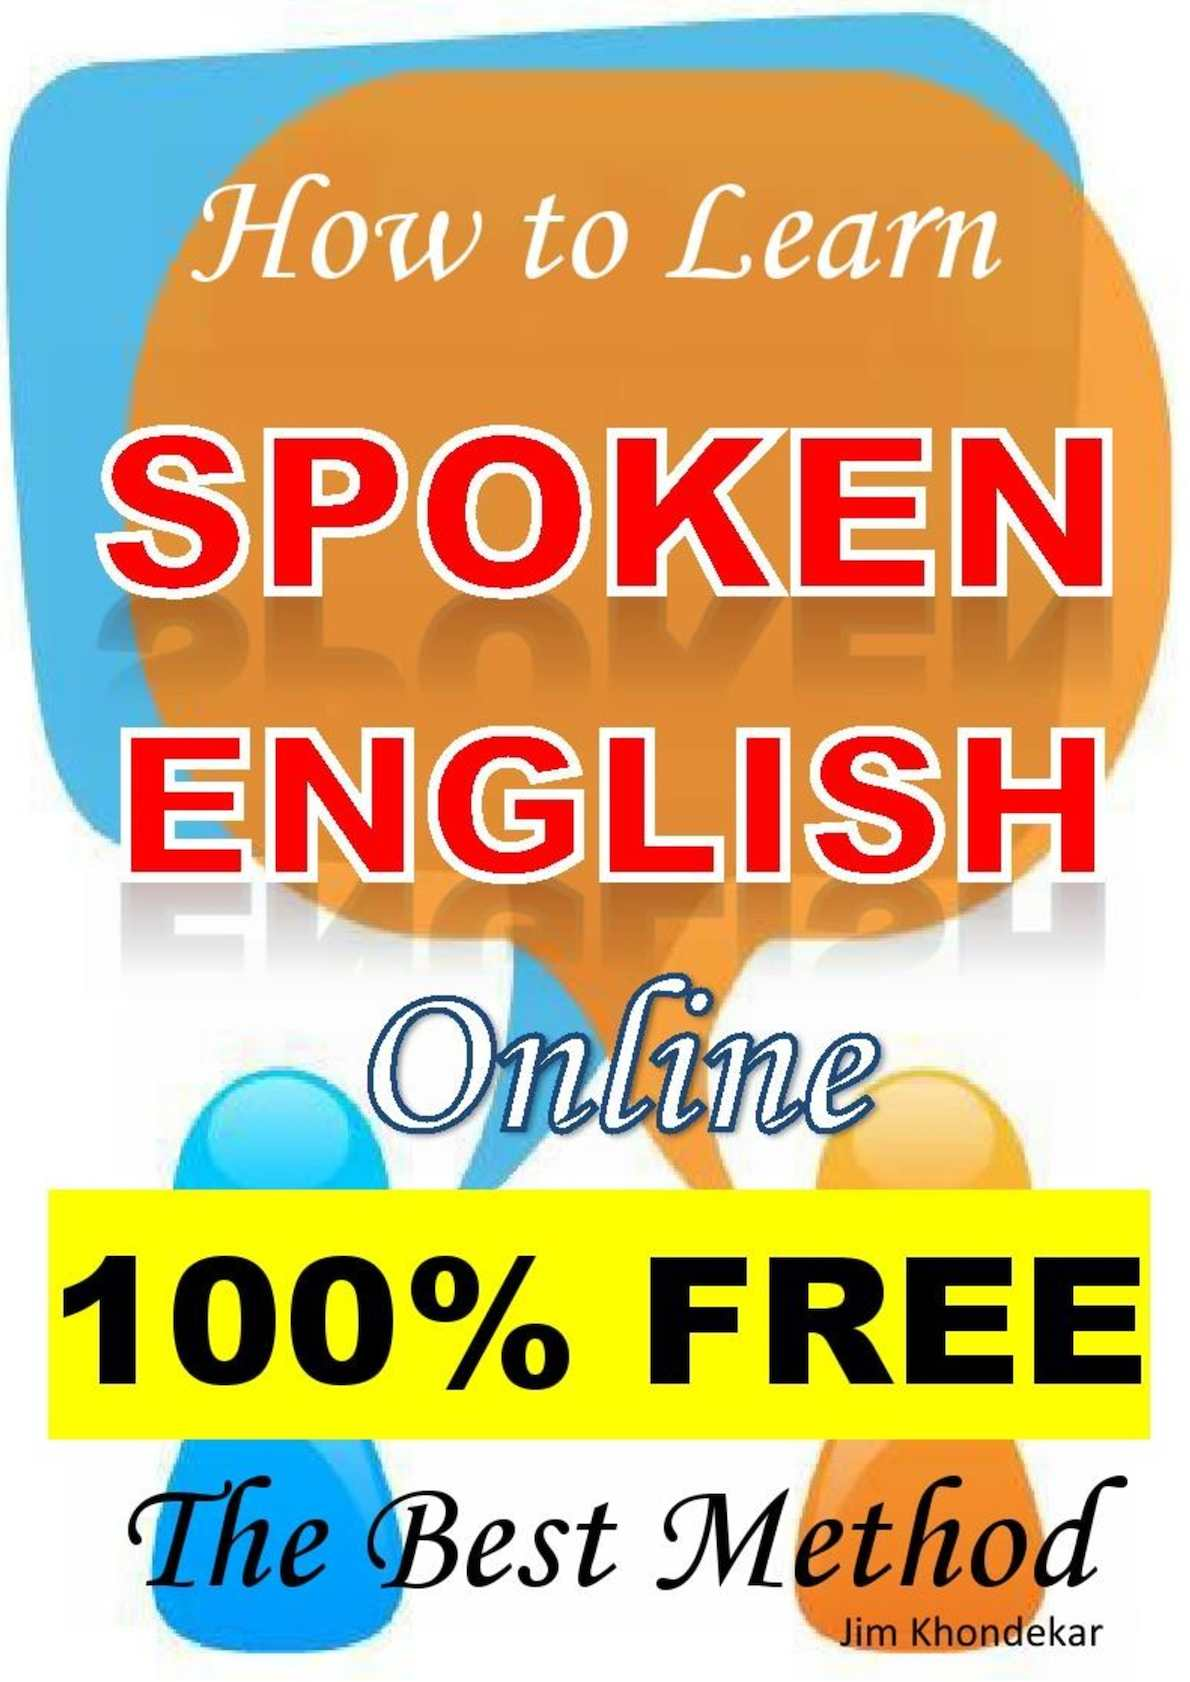 How To Learn Spoken English Online 100% Free The Best Method By Jim